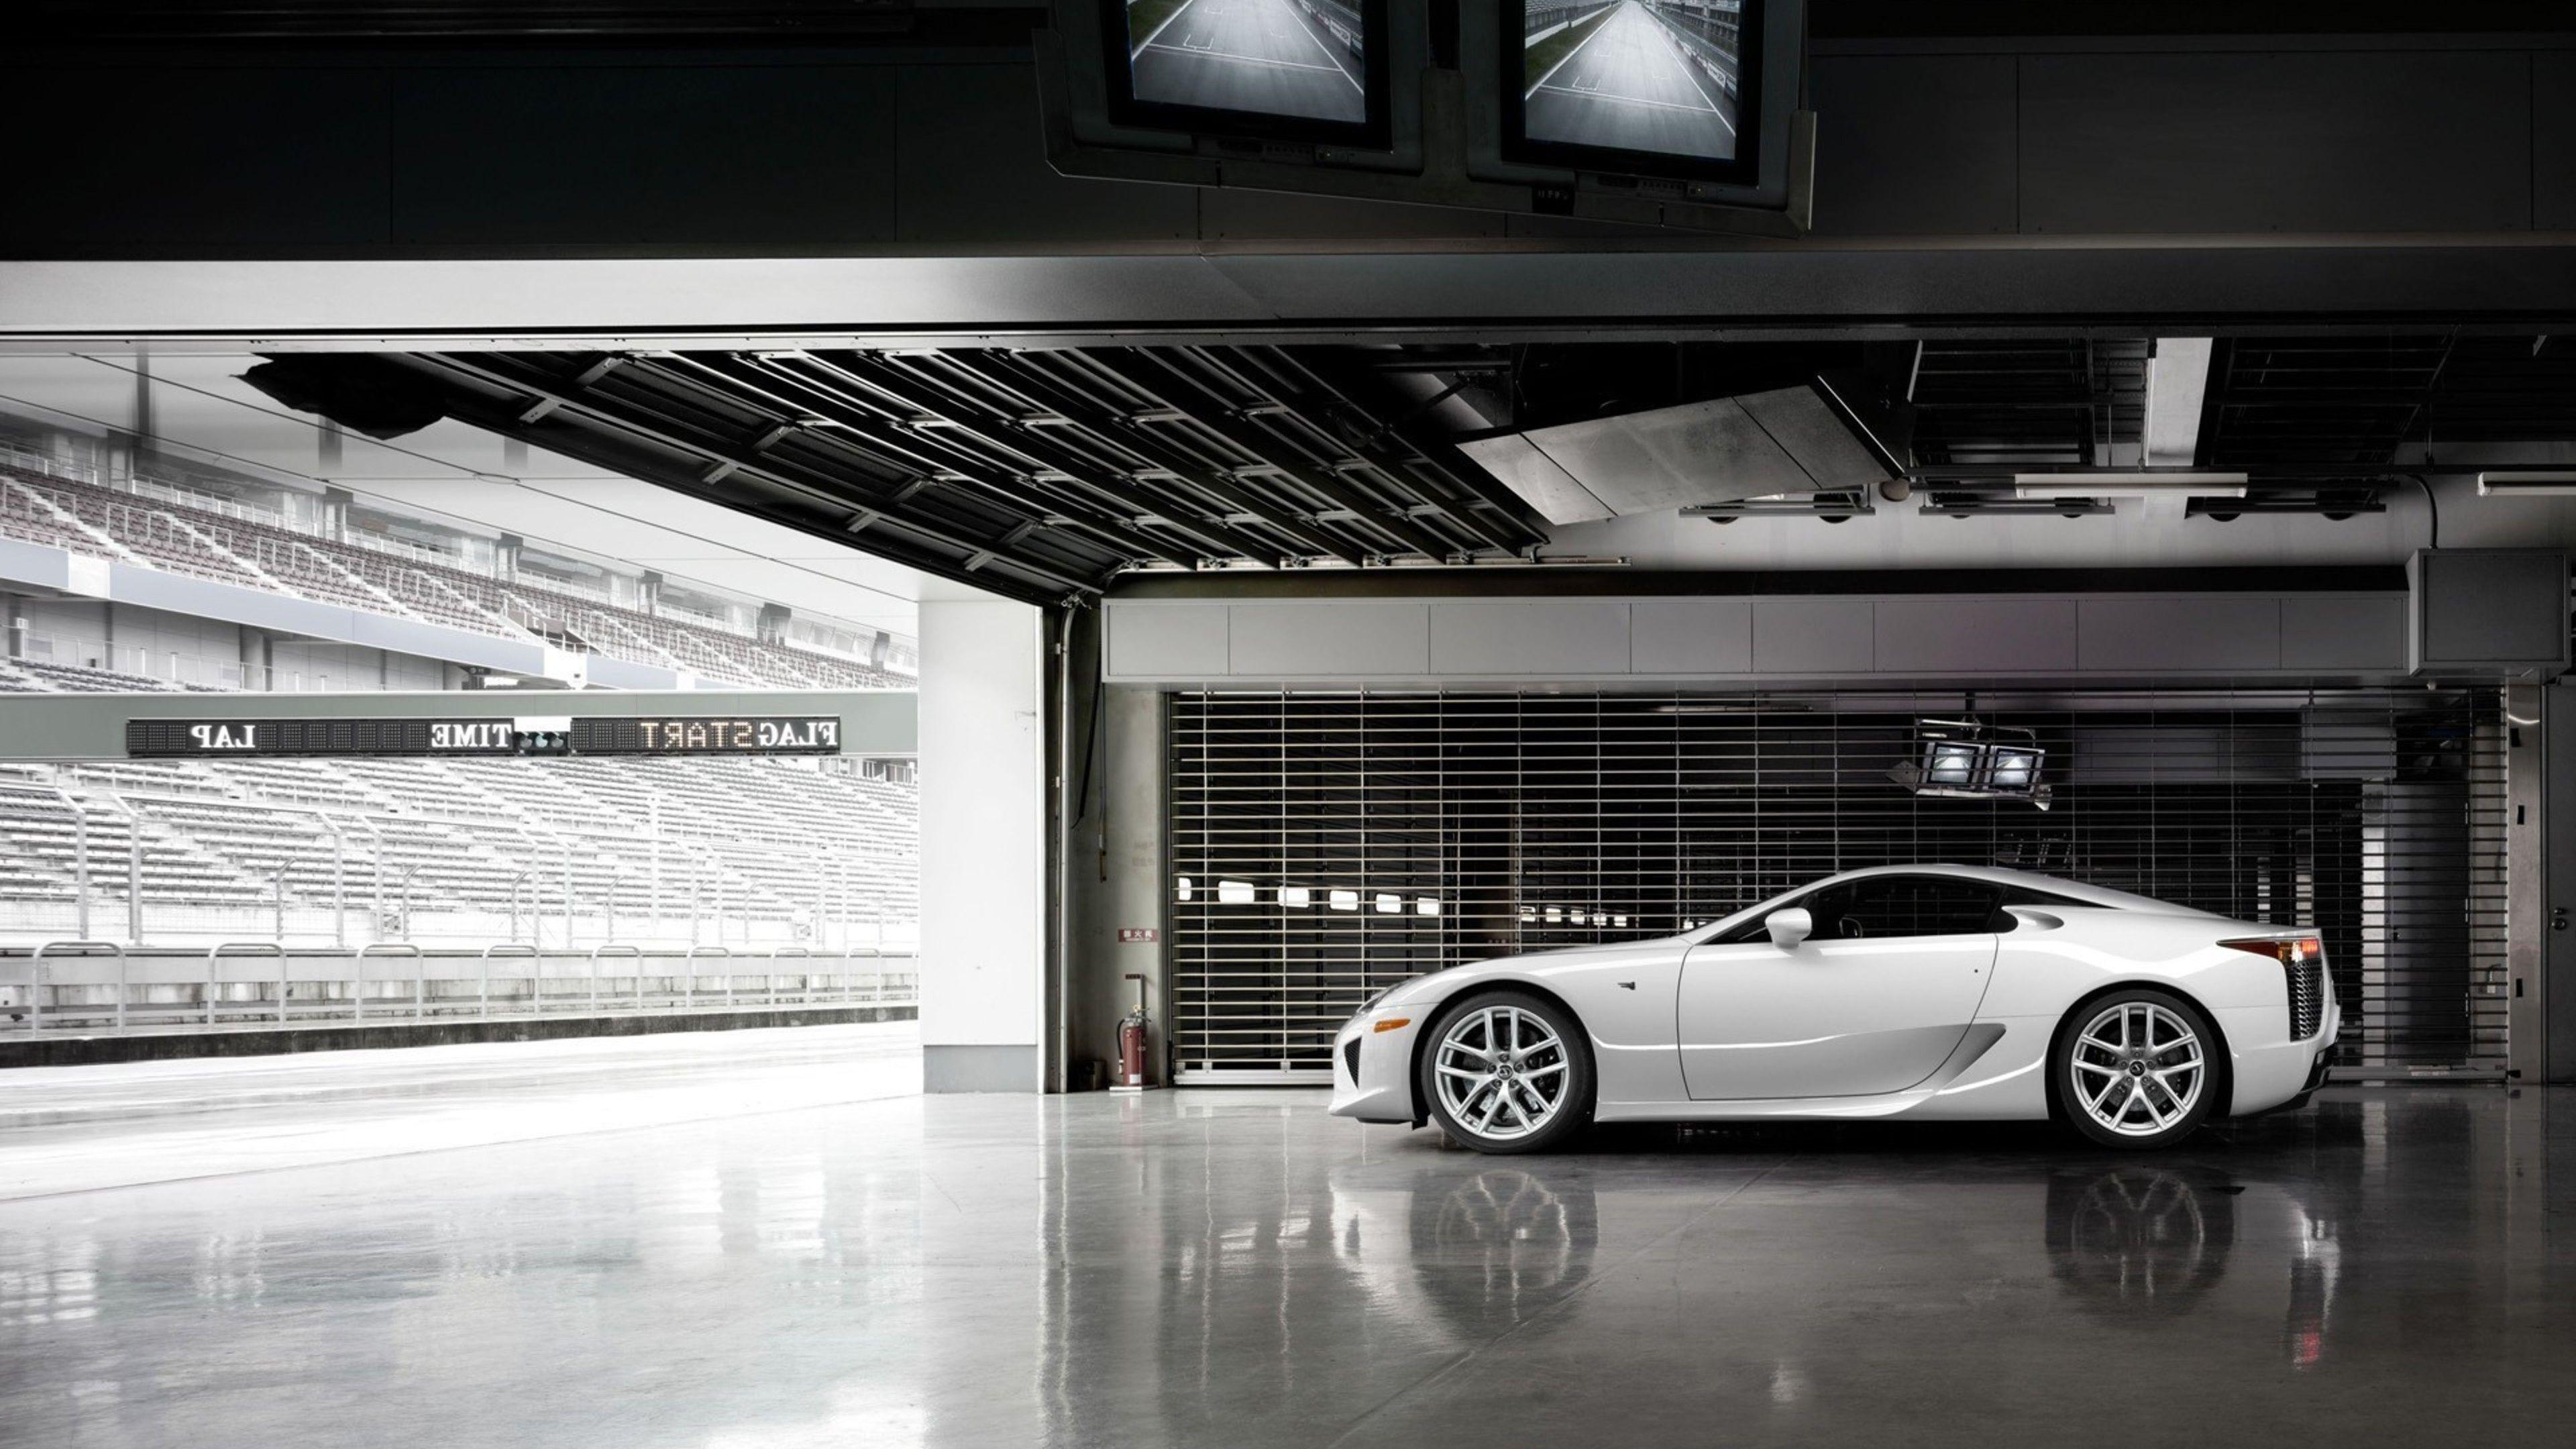 Lexus LFA, HD Cars, 4k Wallpapers, Image, Backgrounds, Photos and